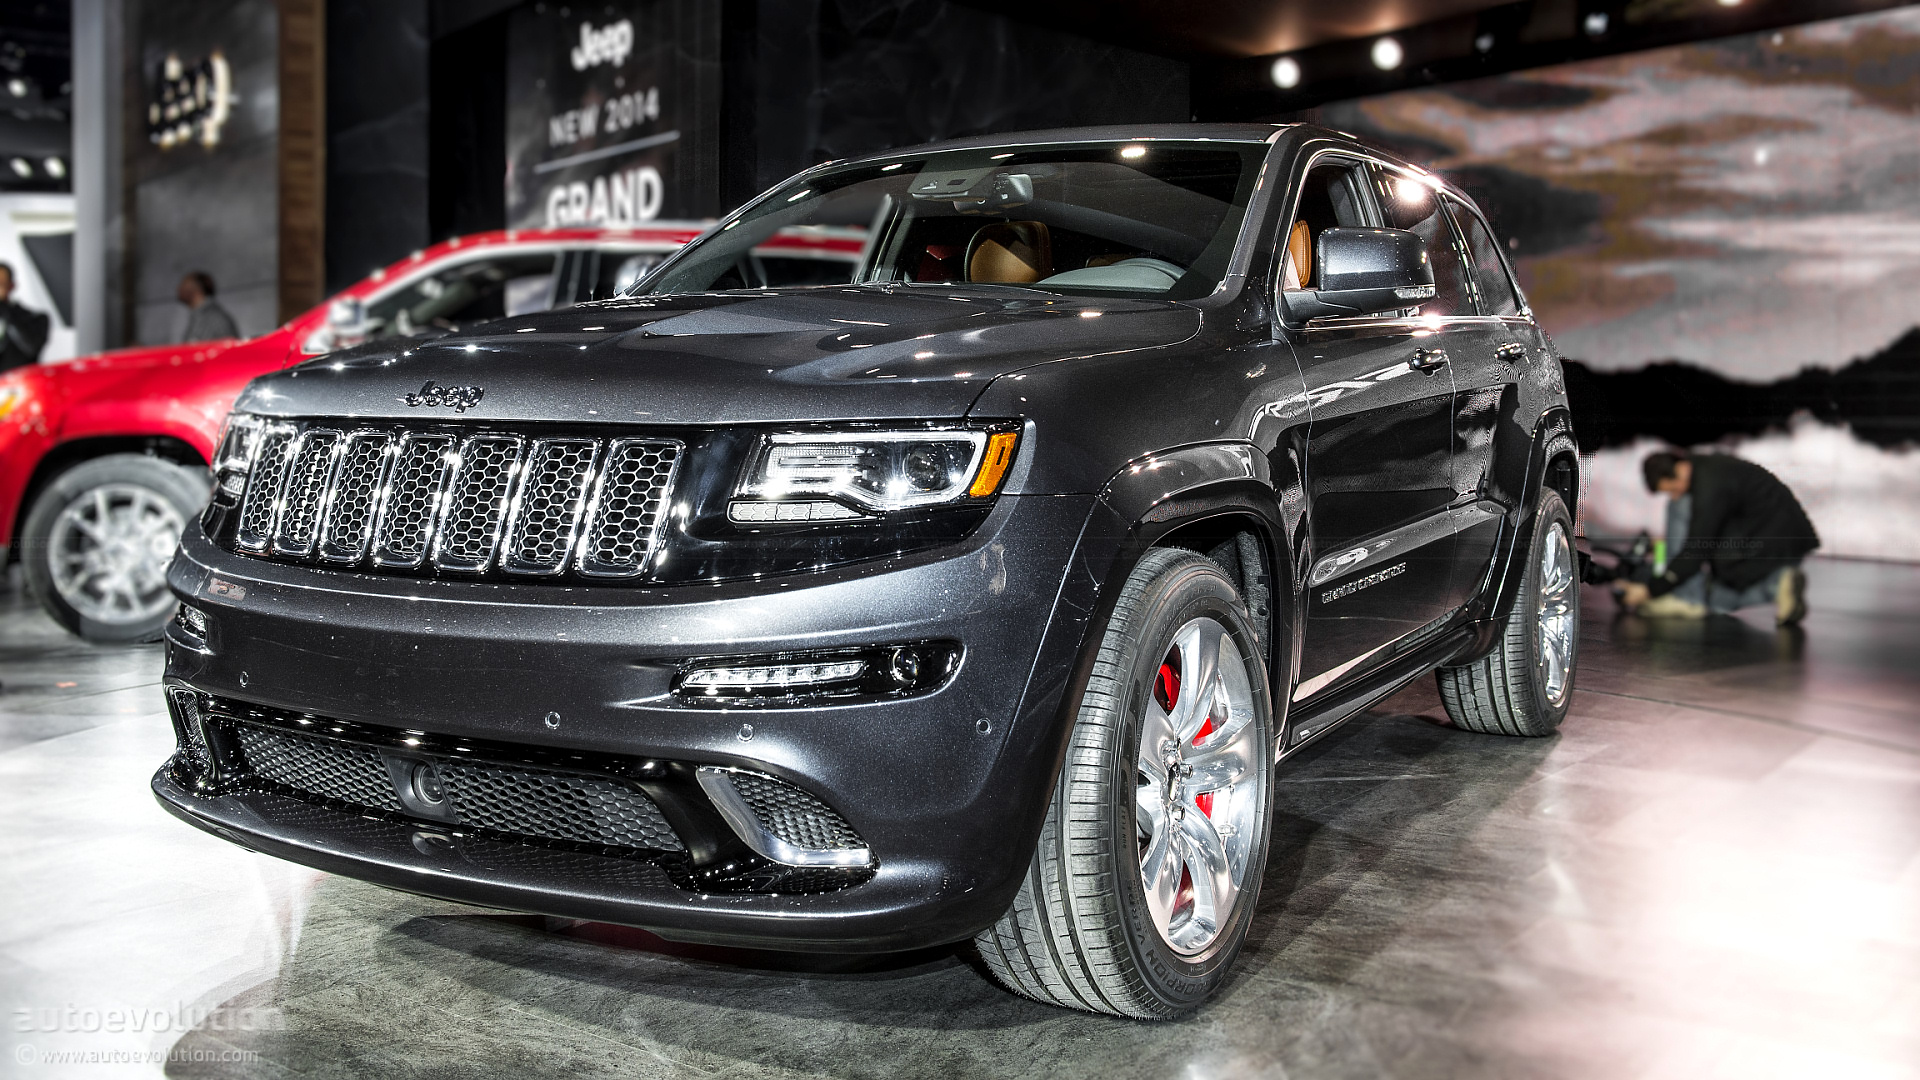 2014 Jeep Grand Cherokee SRT8 #4/22